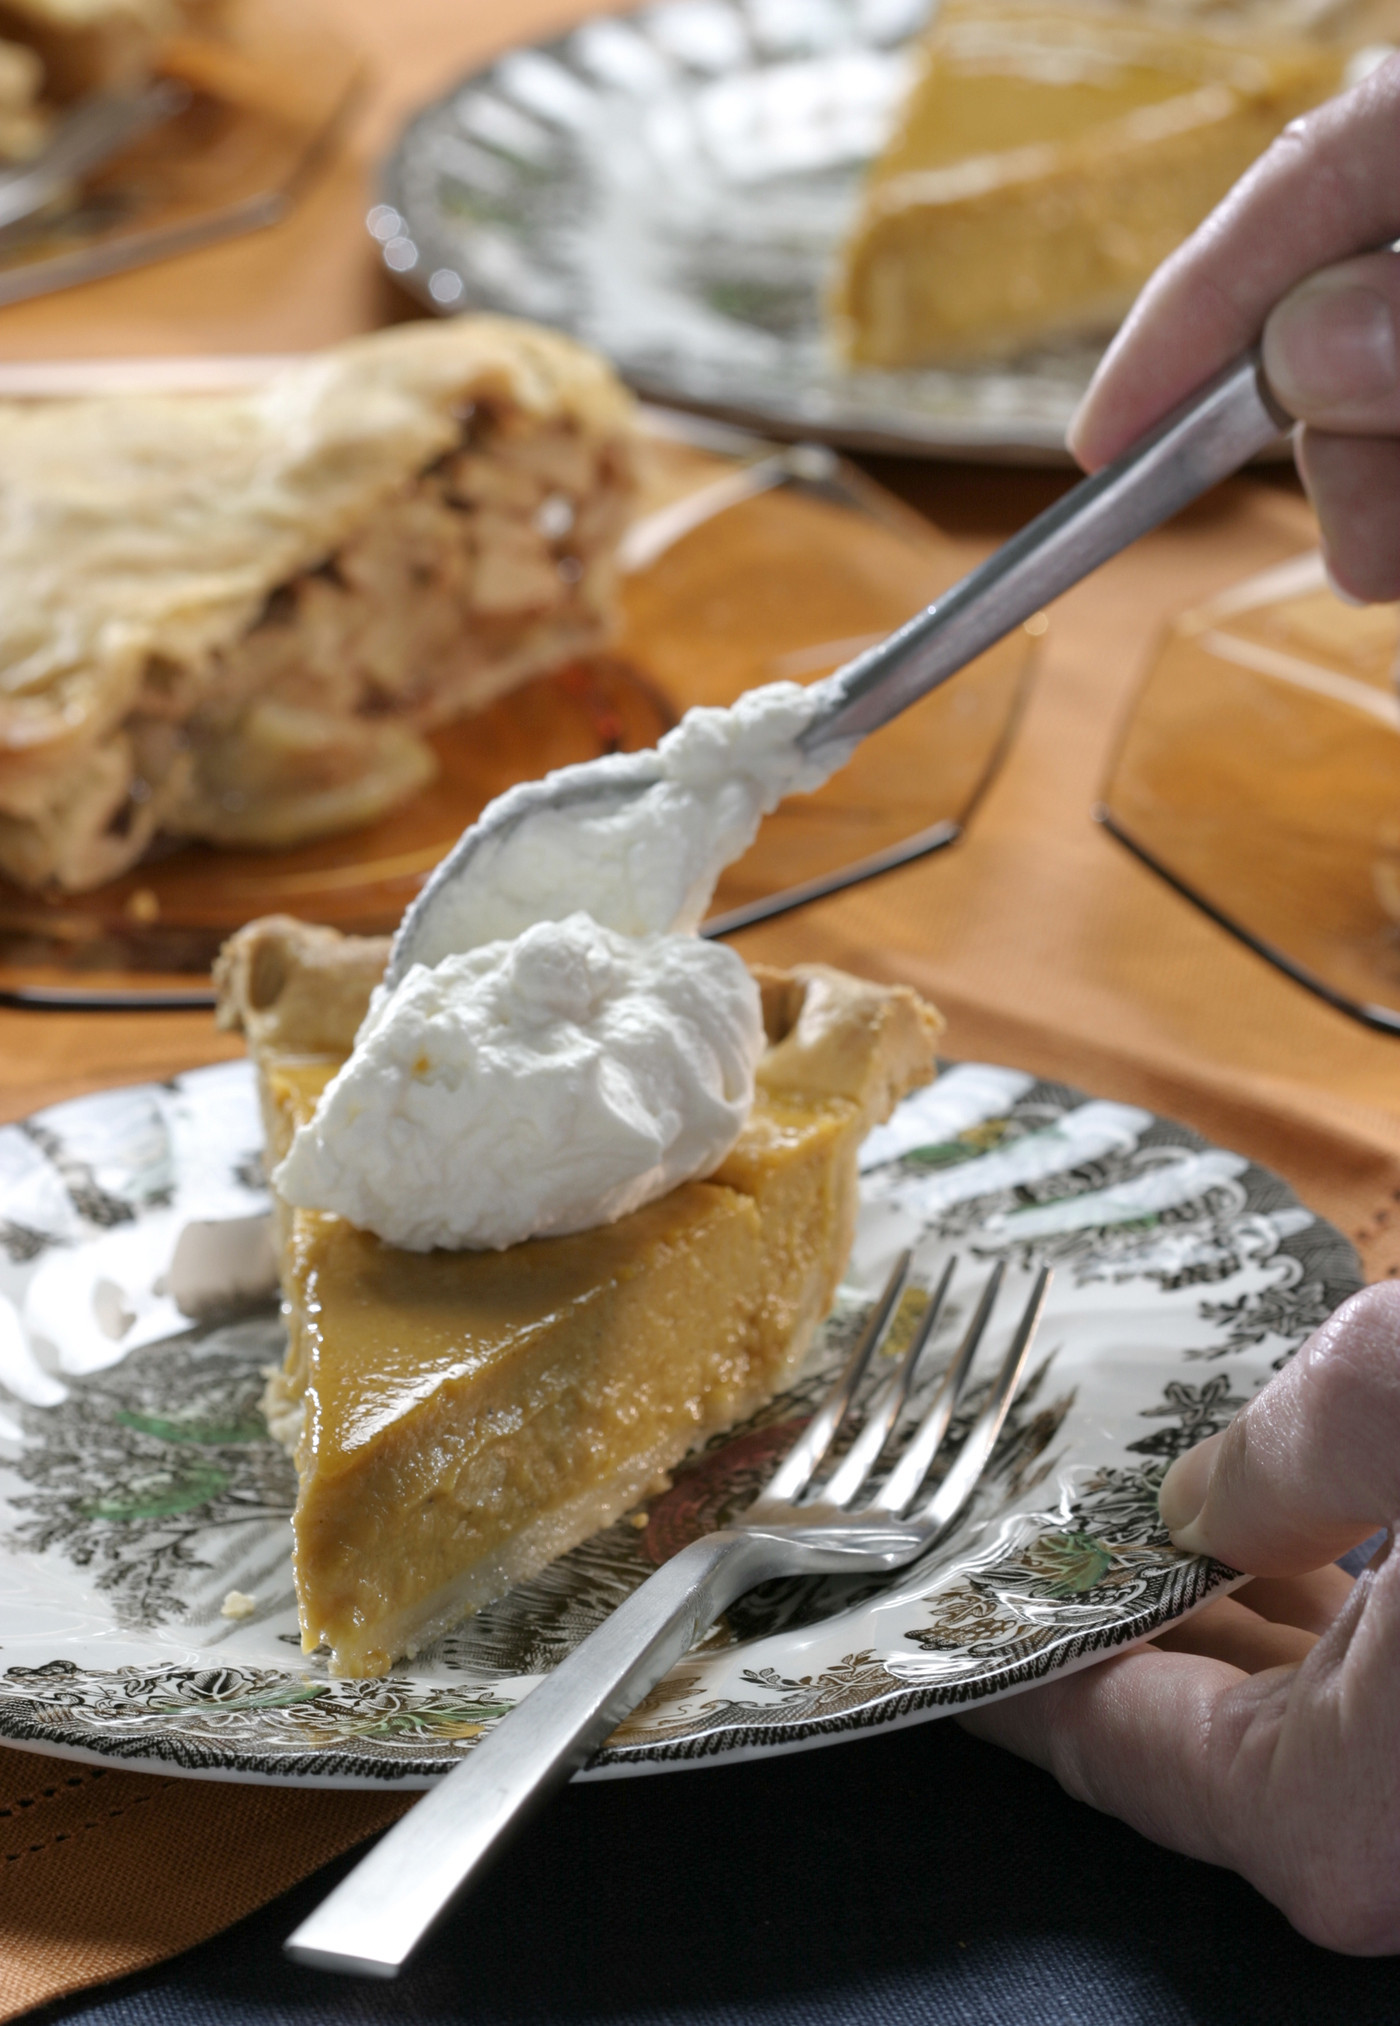 Photos: 97 great Thanksgiving recipes - Pumpkin pie